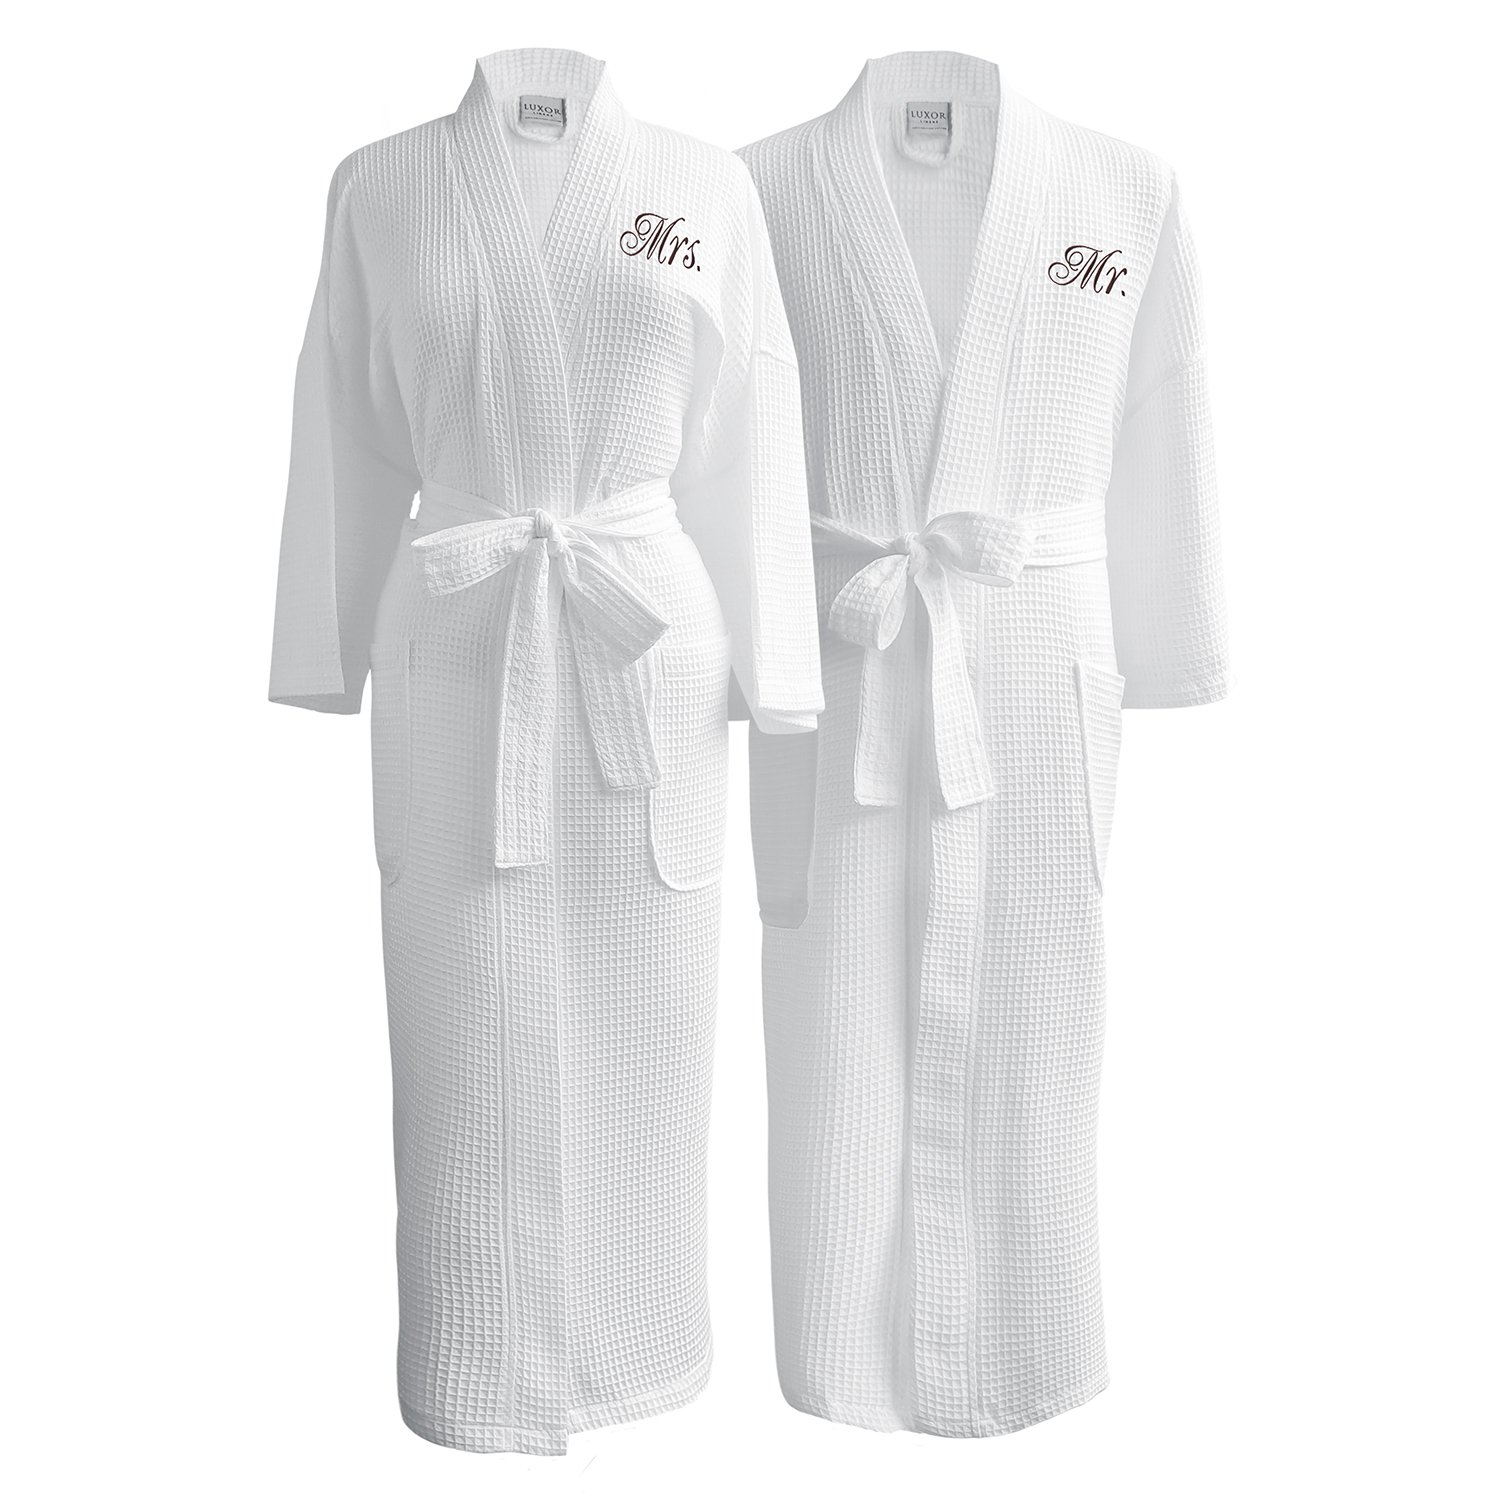 Caravalli Egyptian Cotton Waffle Robe, Spa Robe with Custom Embroidered Monogram